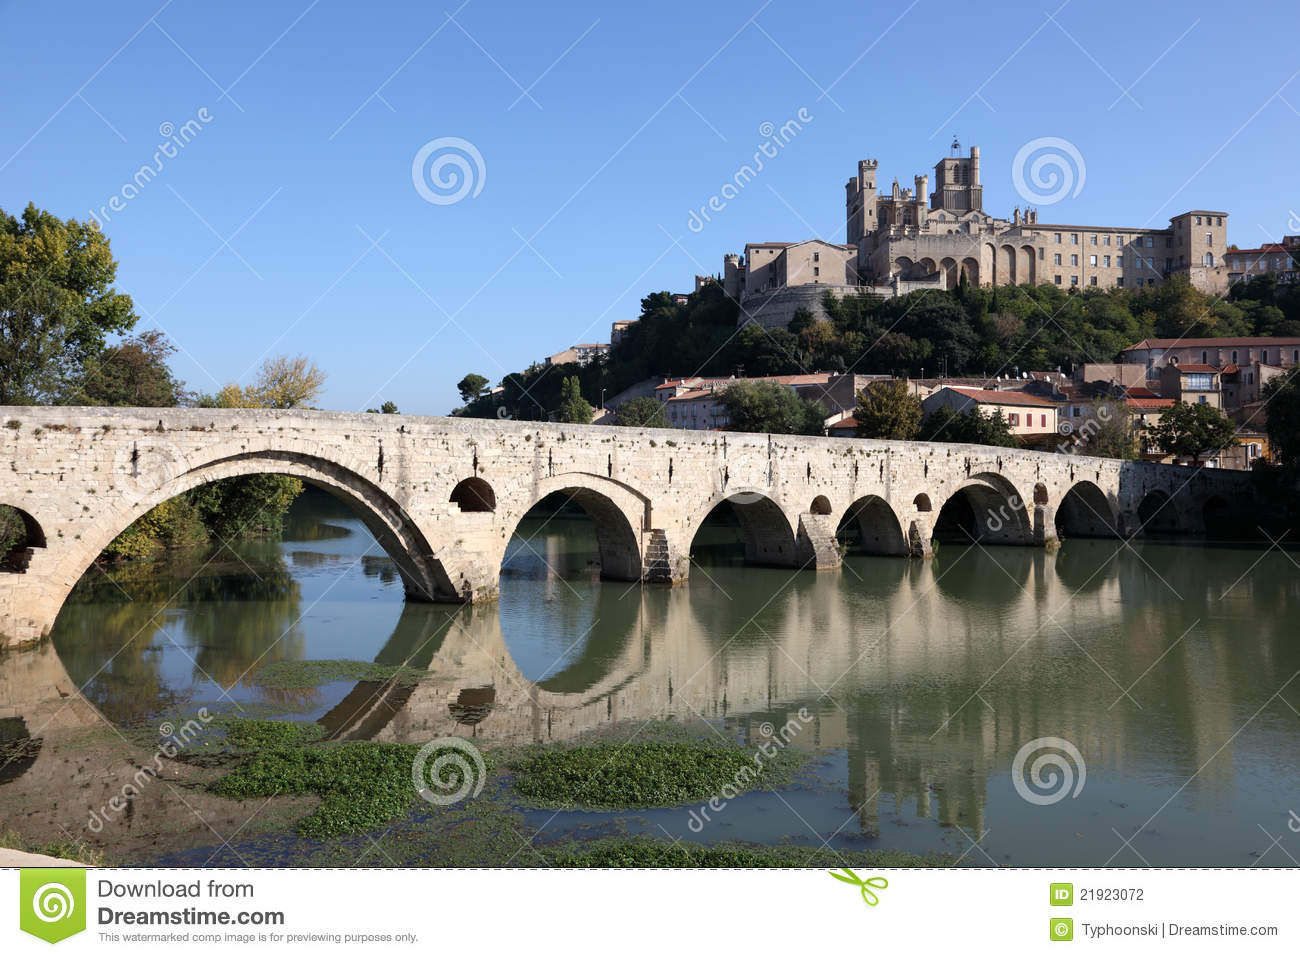 pont vieux in beziers france stock photography image 21923072. Black Bedroom Furniture Sets. Home Design Ideas